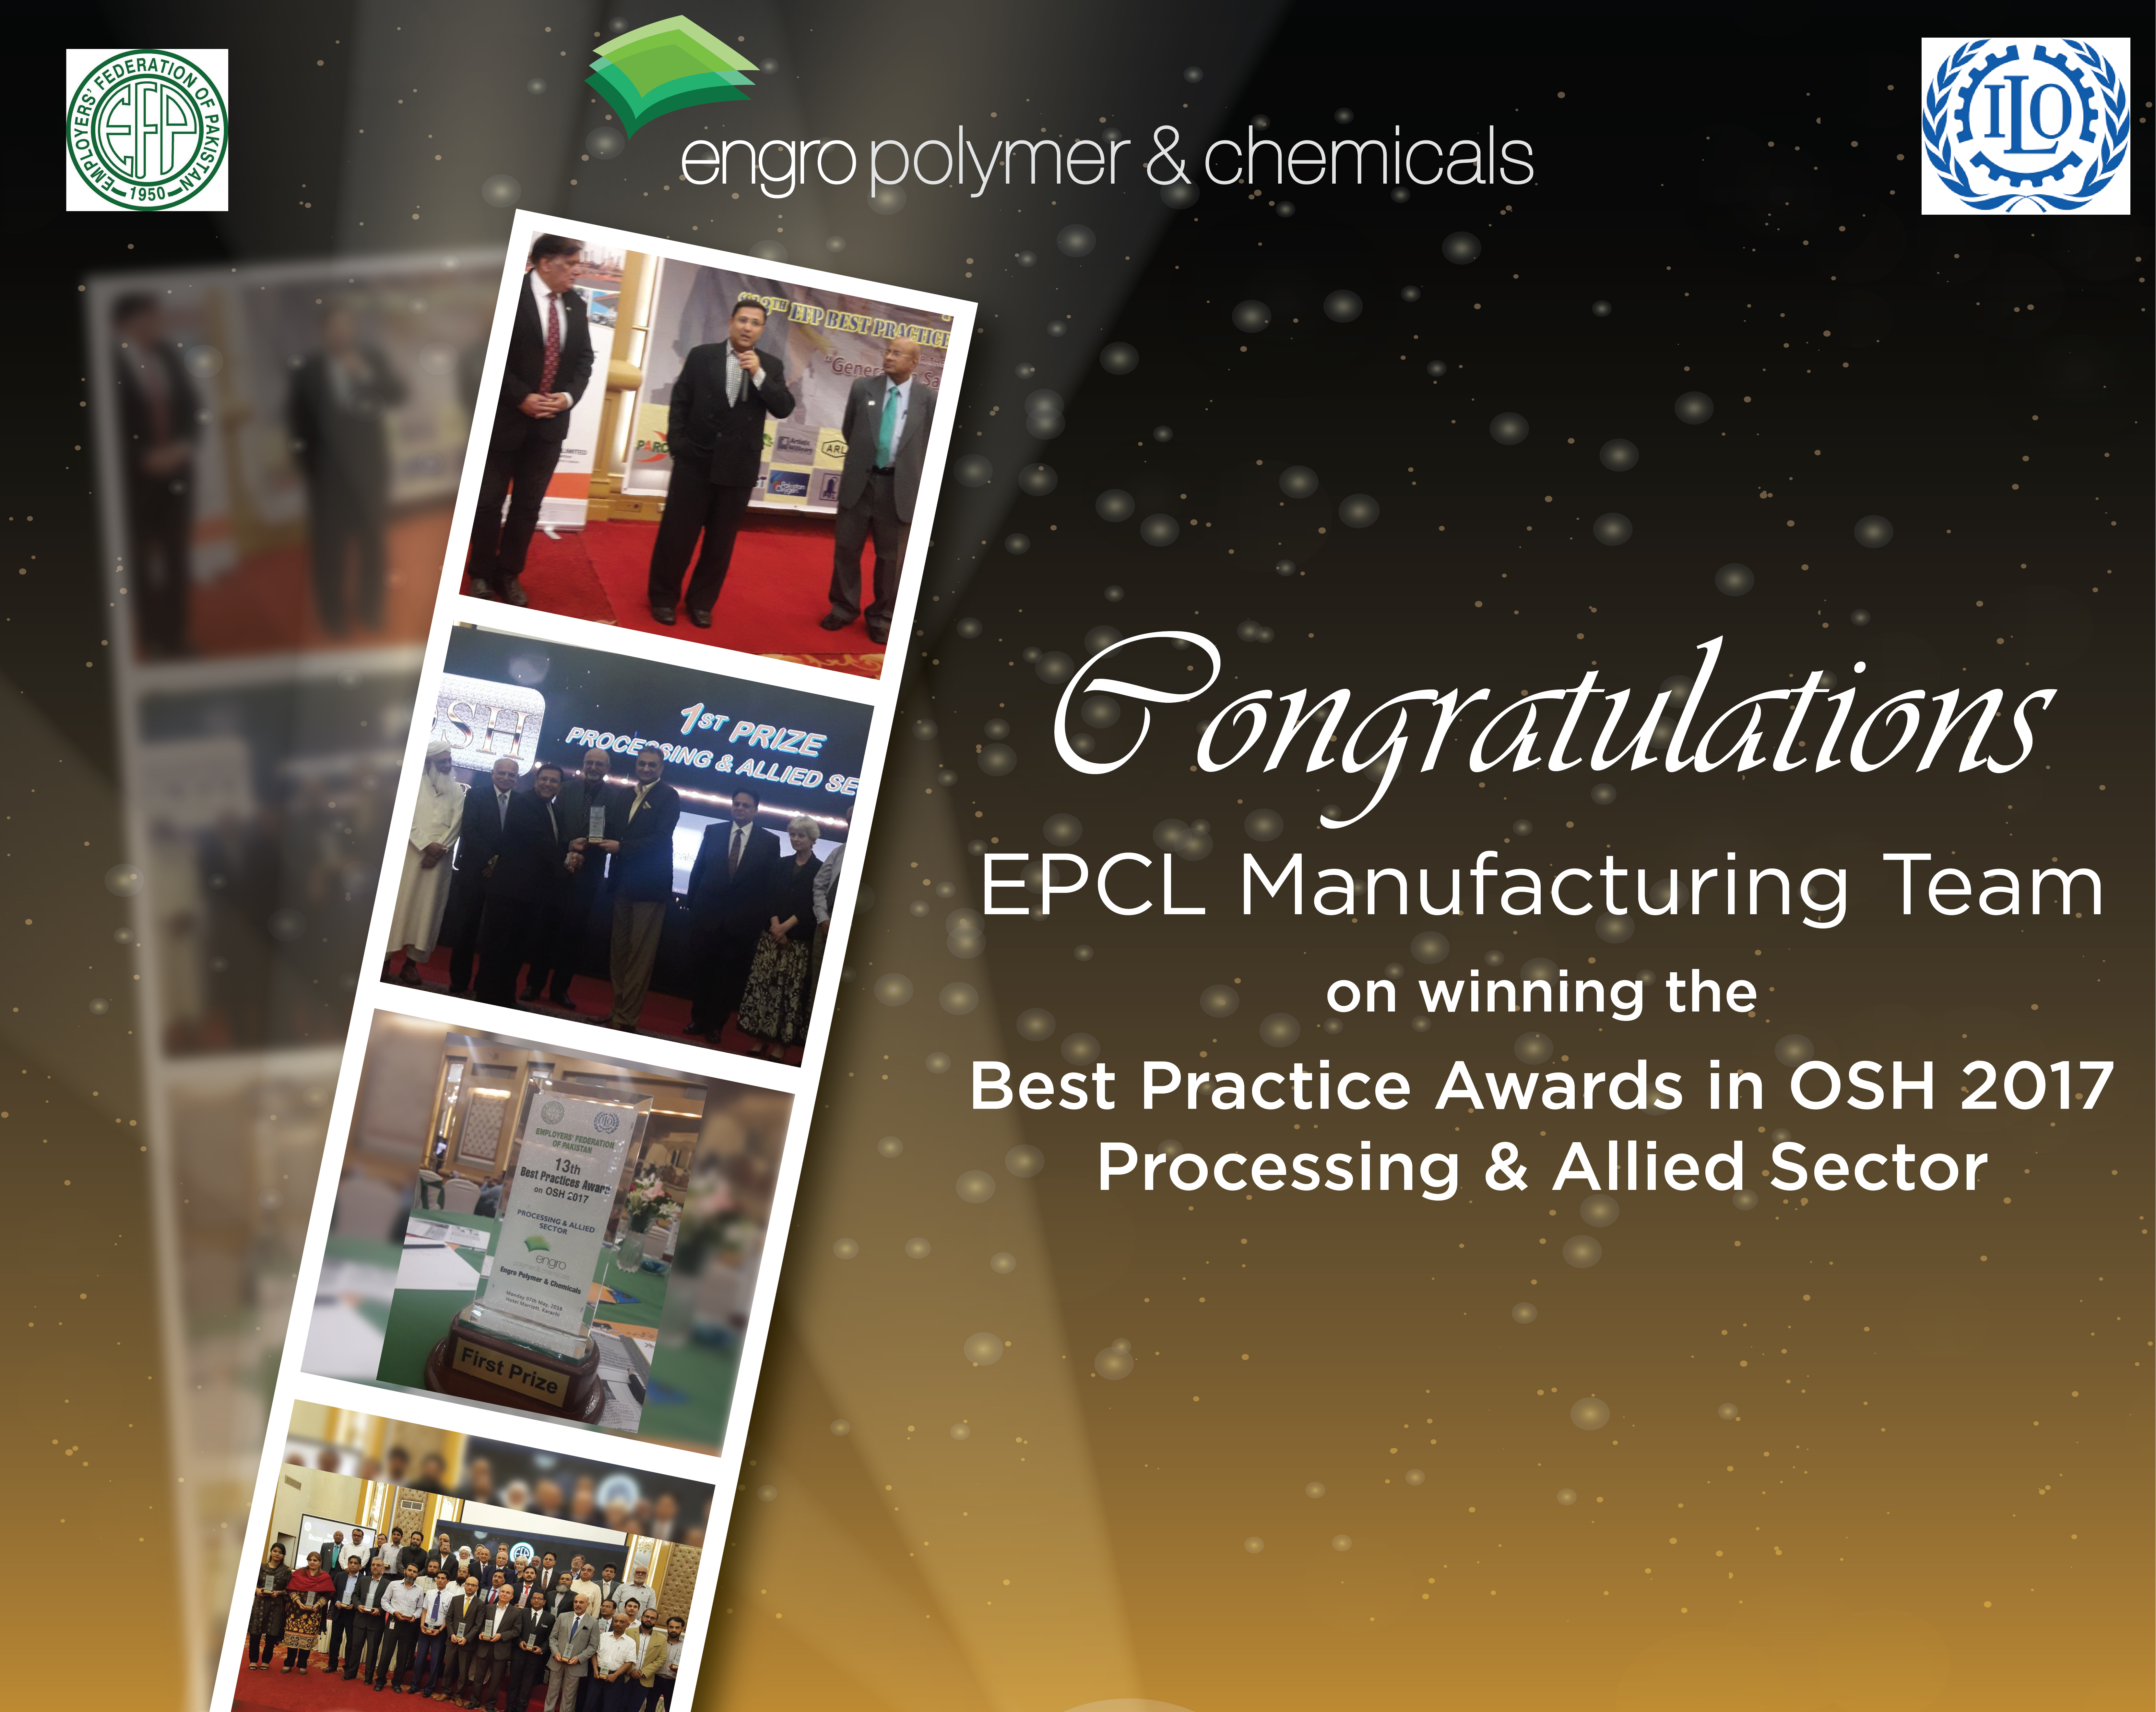 EPCL Manufacturing Team wins Best Practices Awards